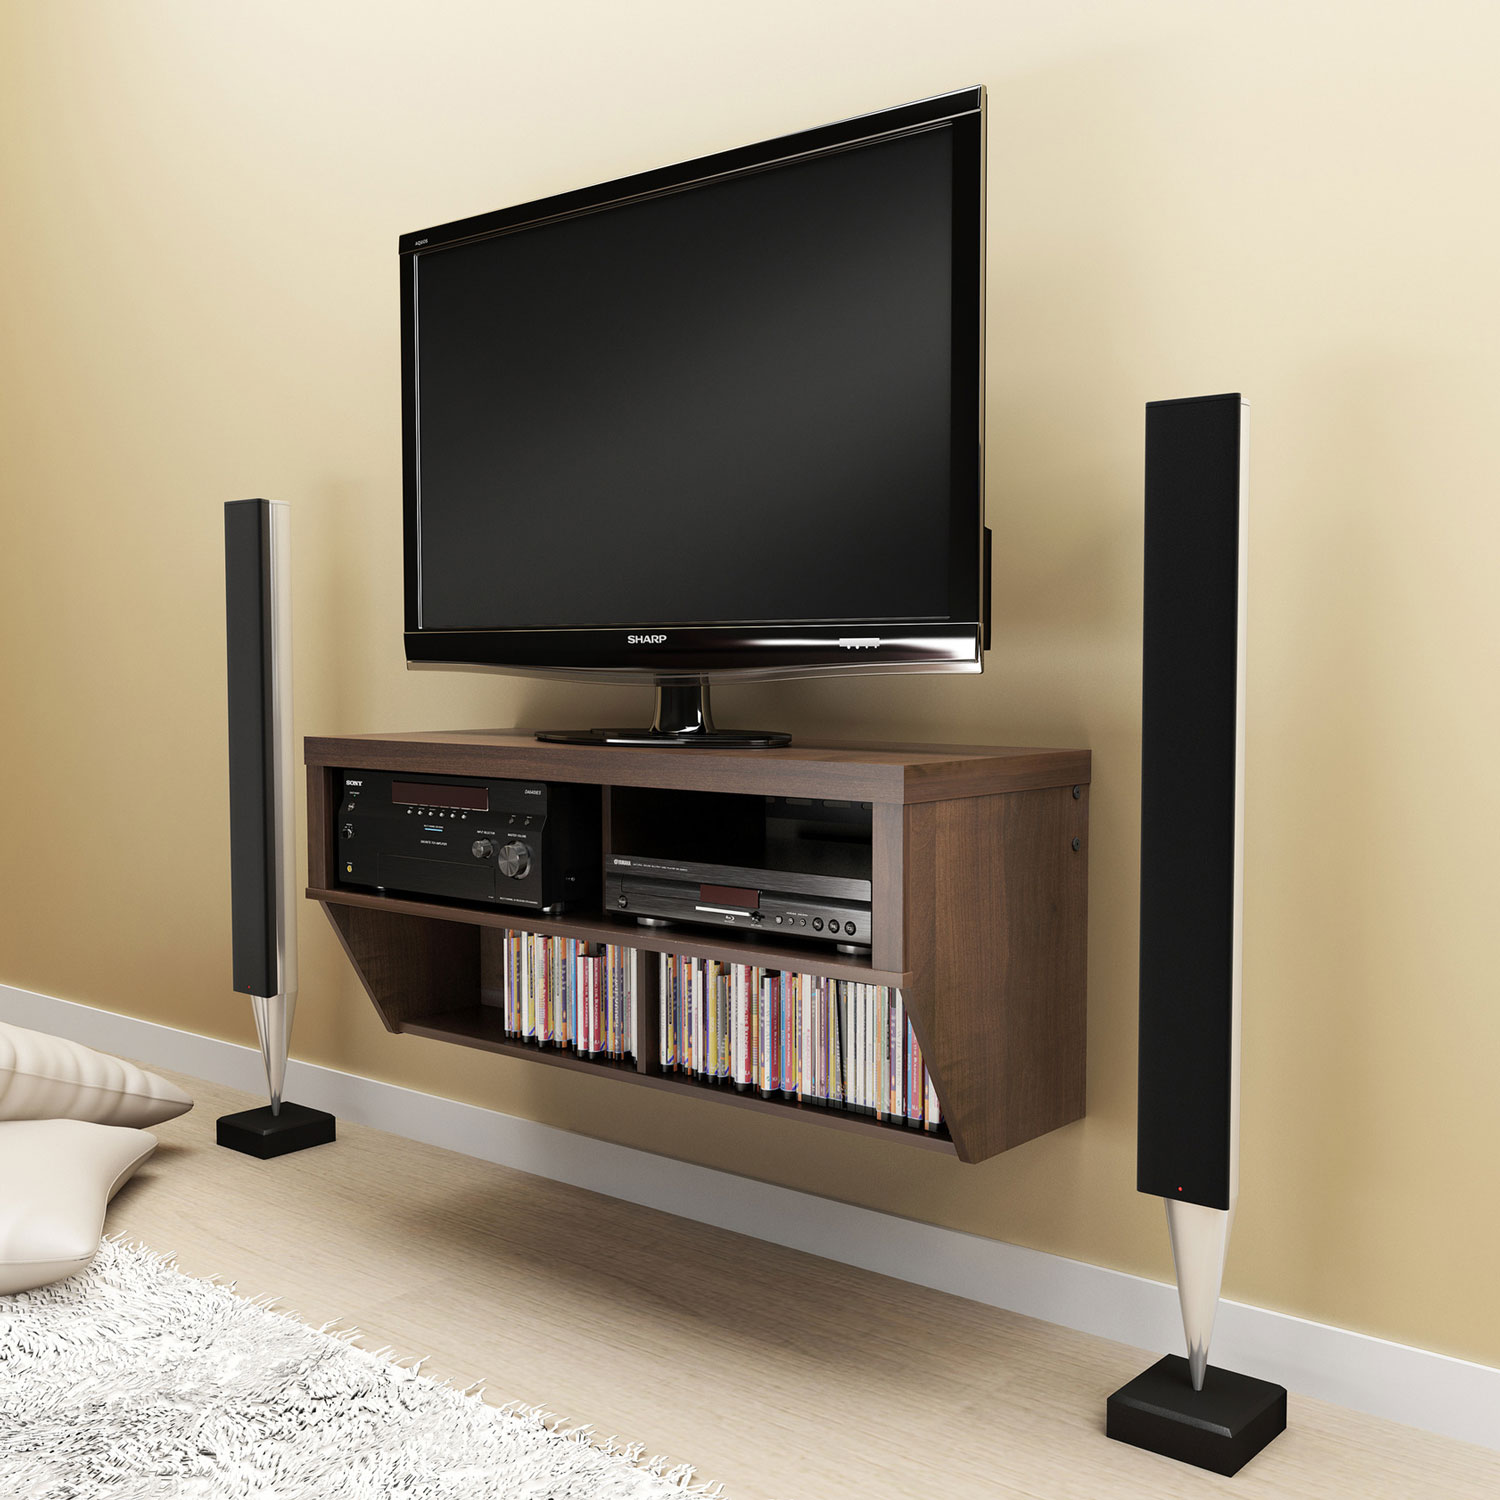 Wall Mounted Tv Cabinet : Espresso 42